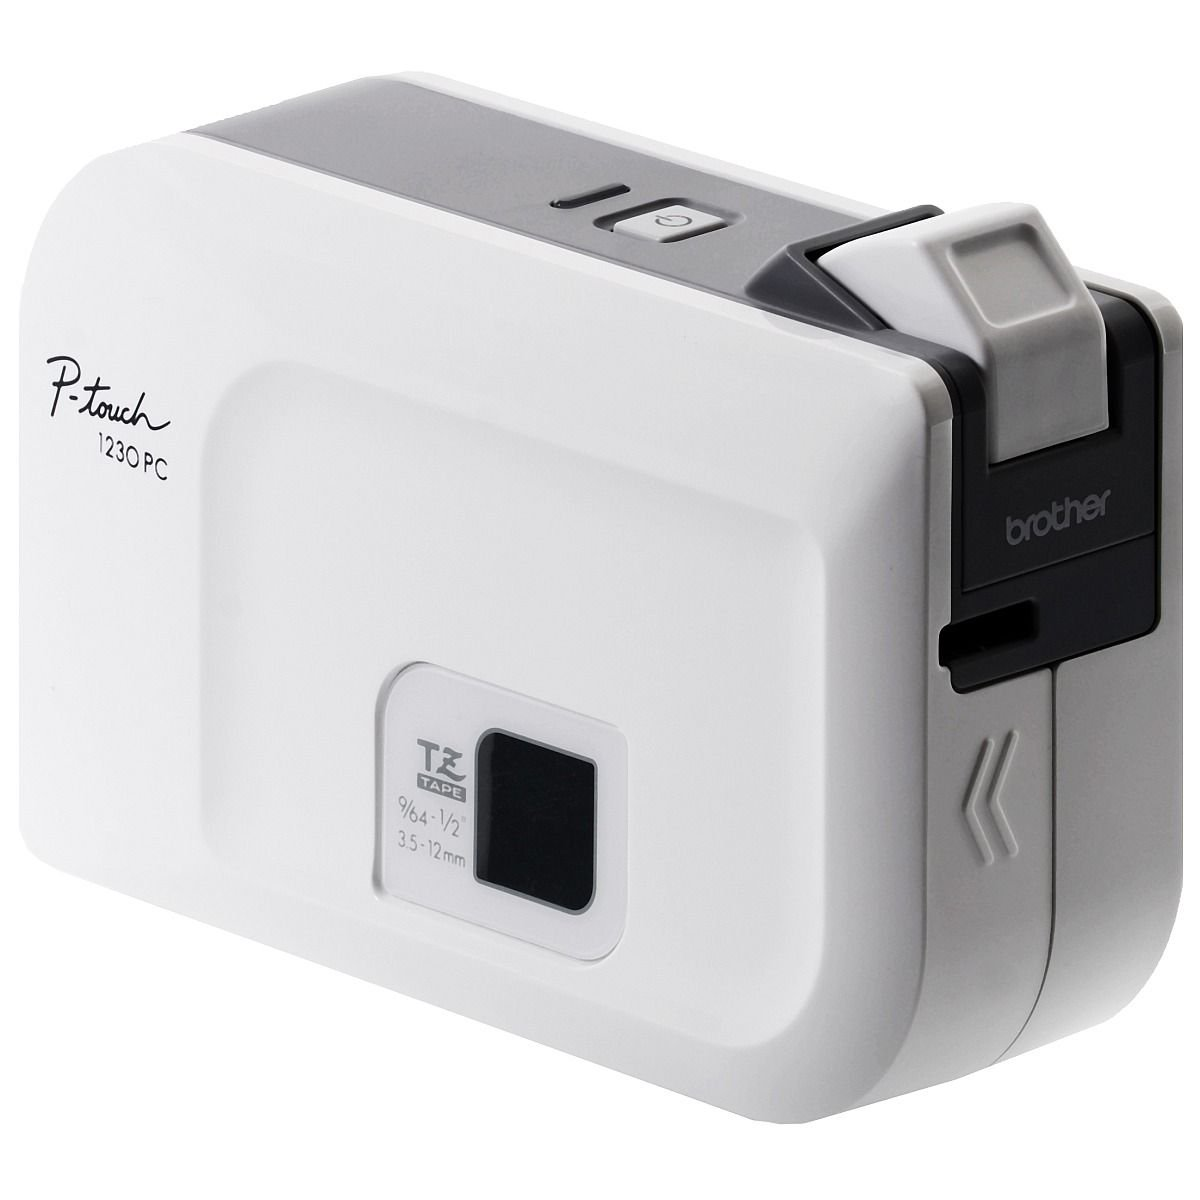 Brother P-touch, PT1230PC, PC-Connectable Label Maker, No Software Needed, Four Different Label Widths, Compact Design, White